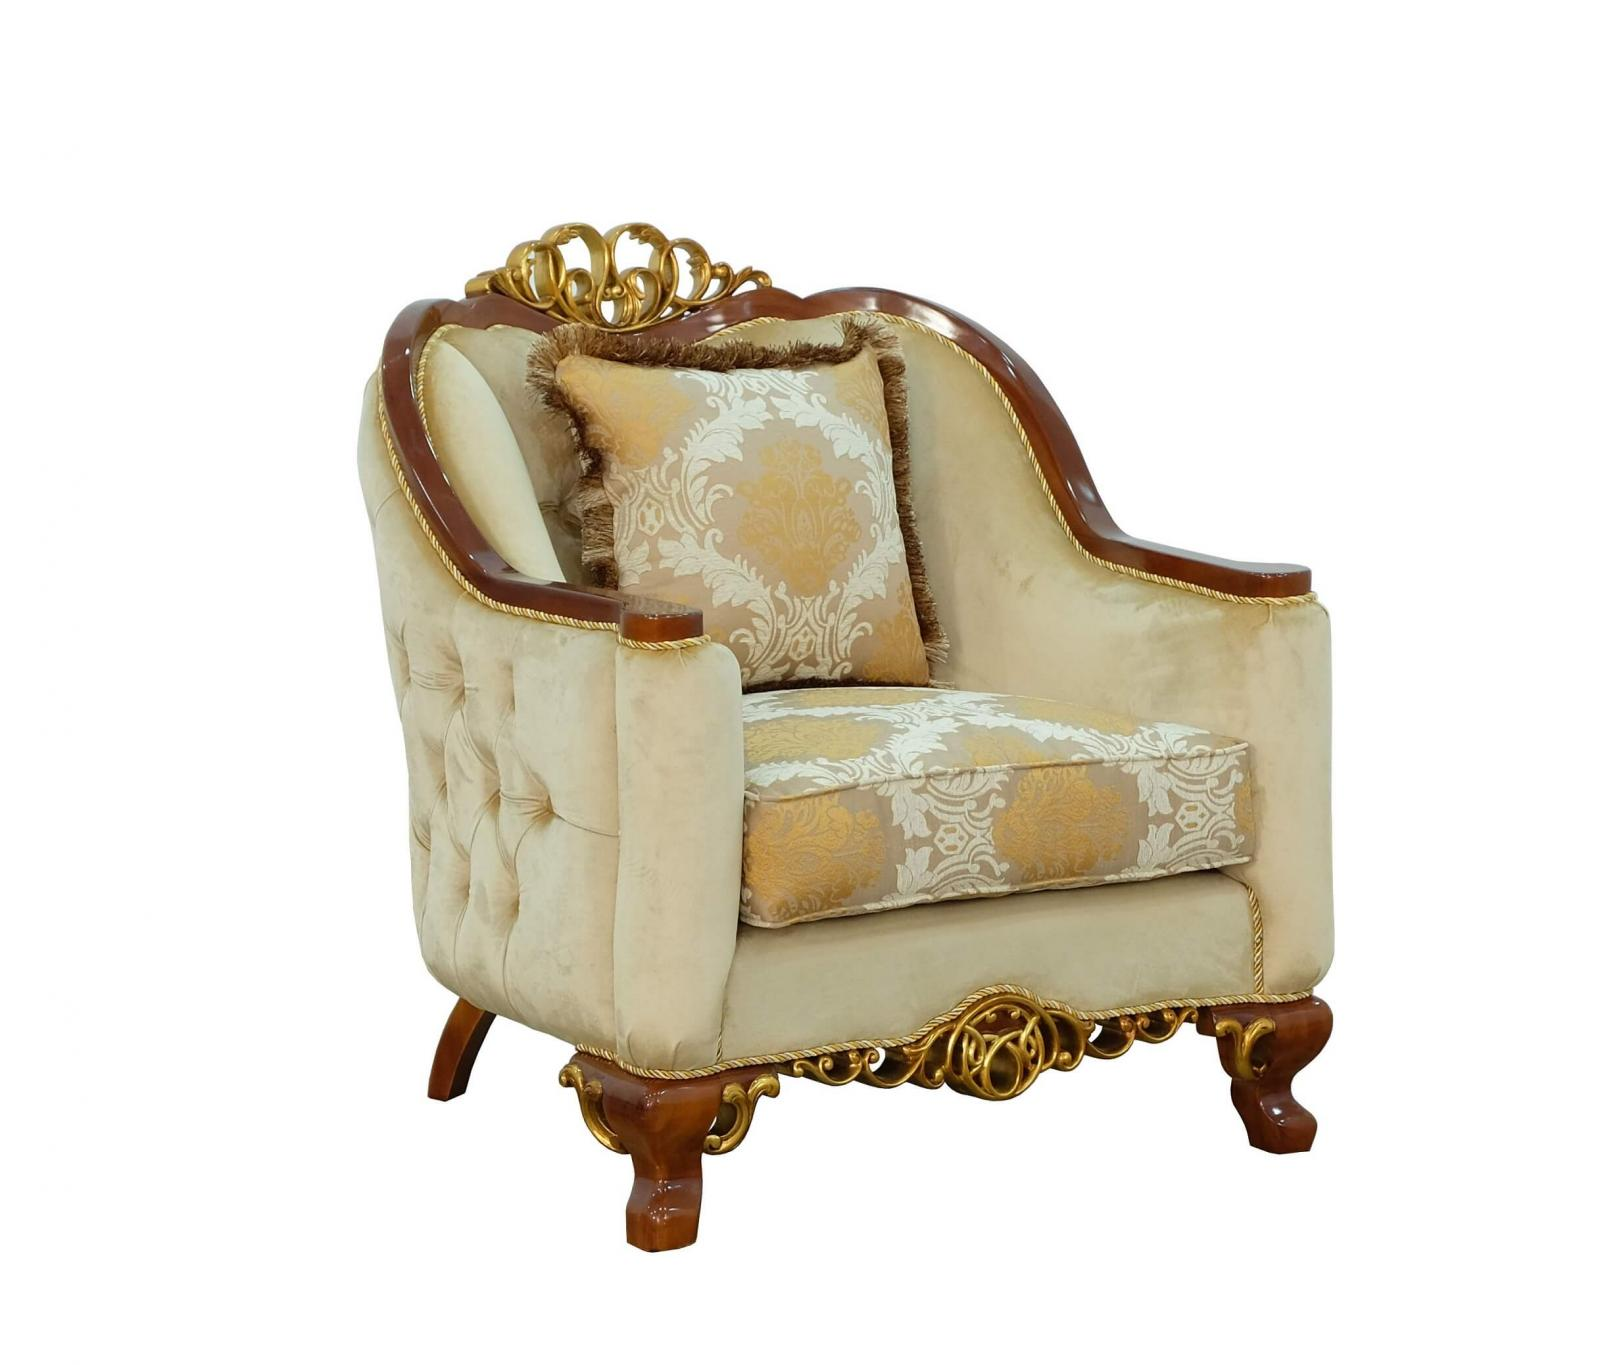 Classic  Traditional Brown  Gold Wood  Solid Hardwood and Fabric Arm Chair EUROPEAN FURNITURE 45354-C